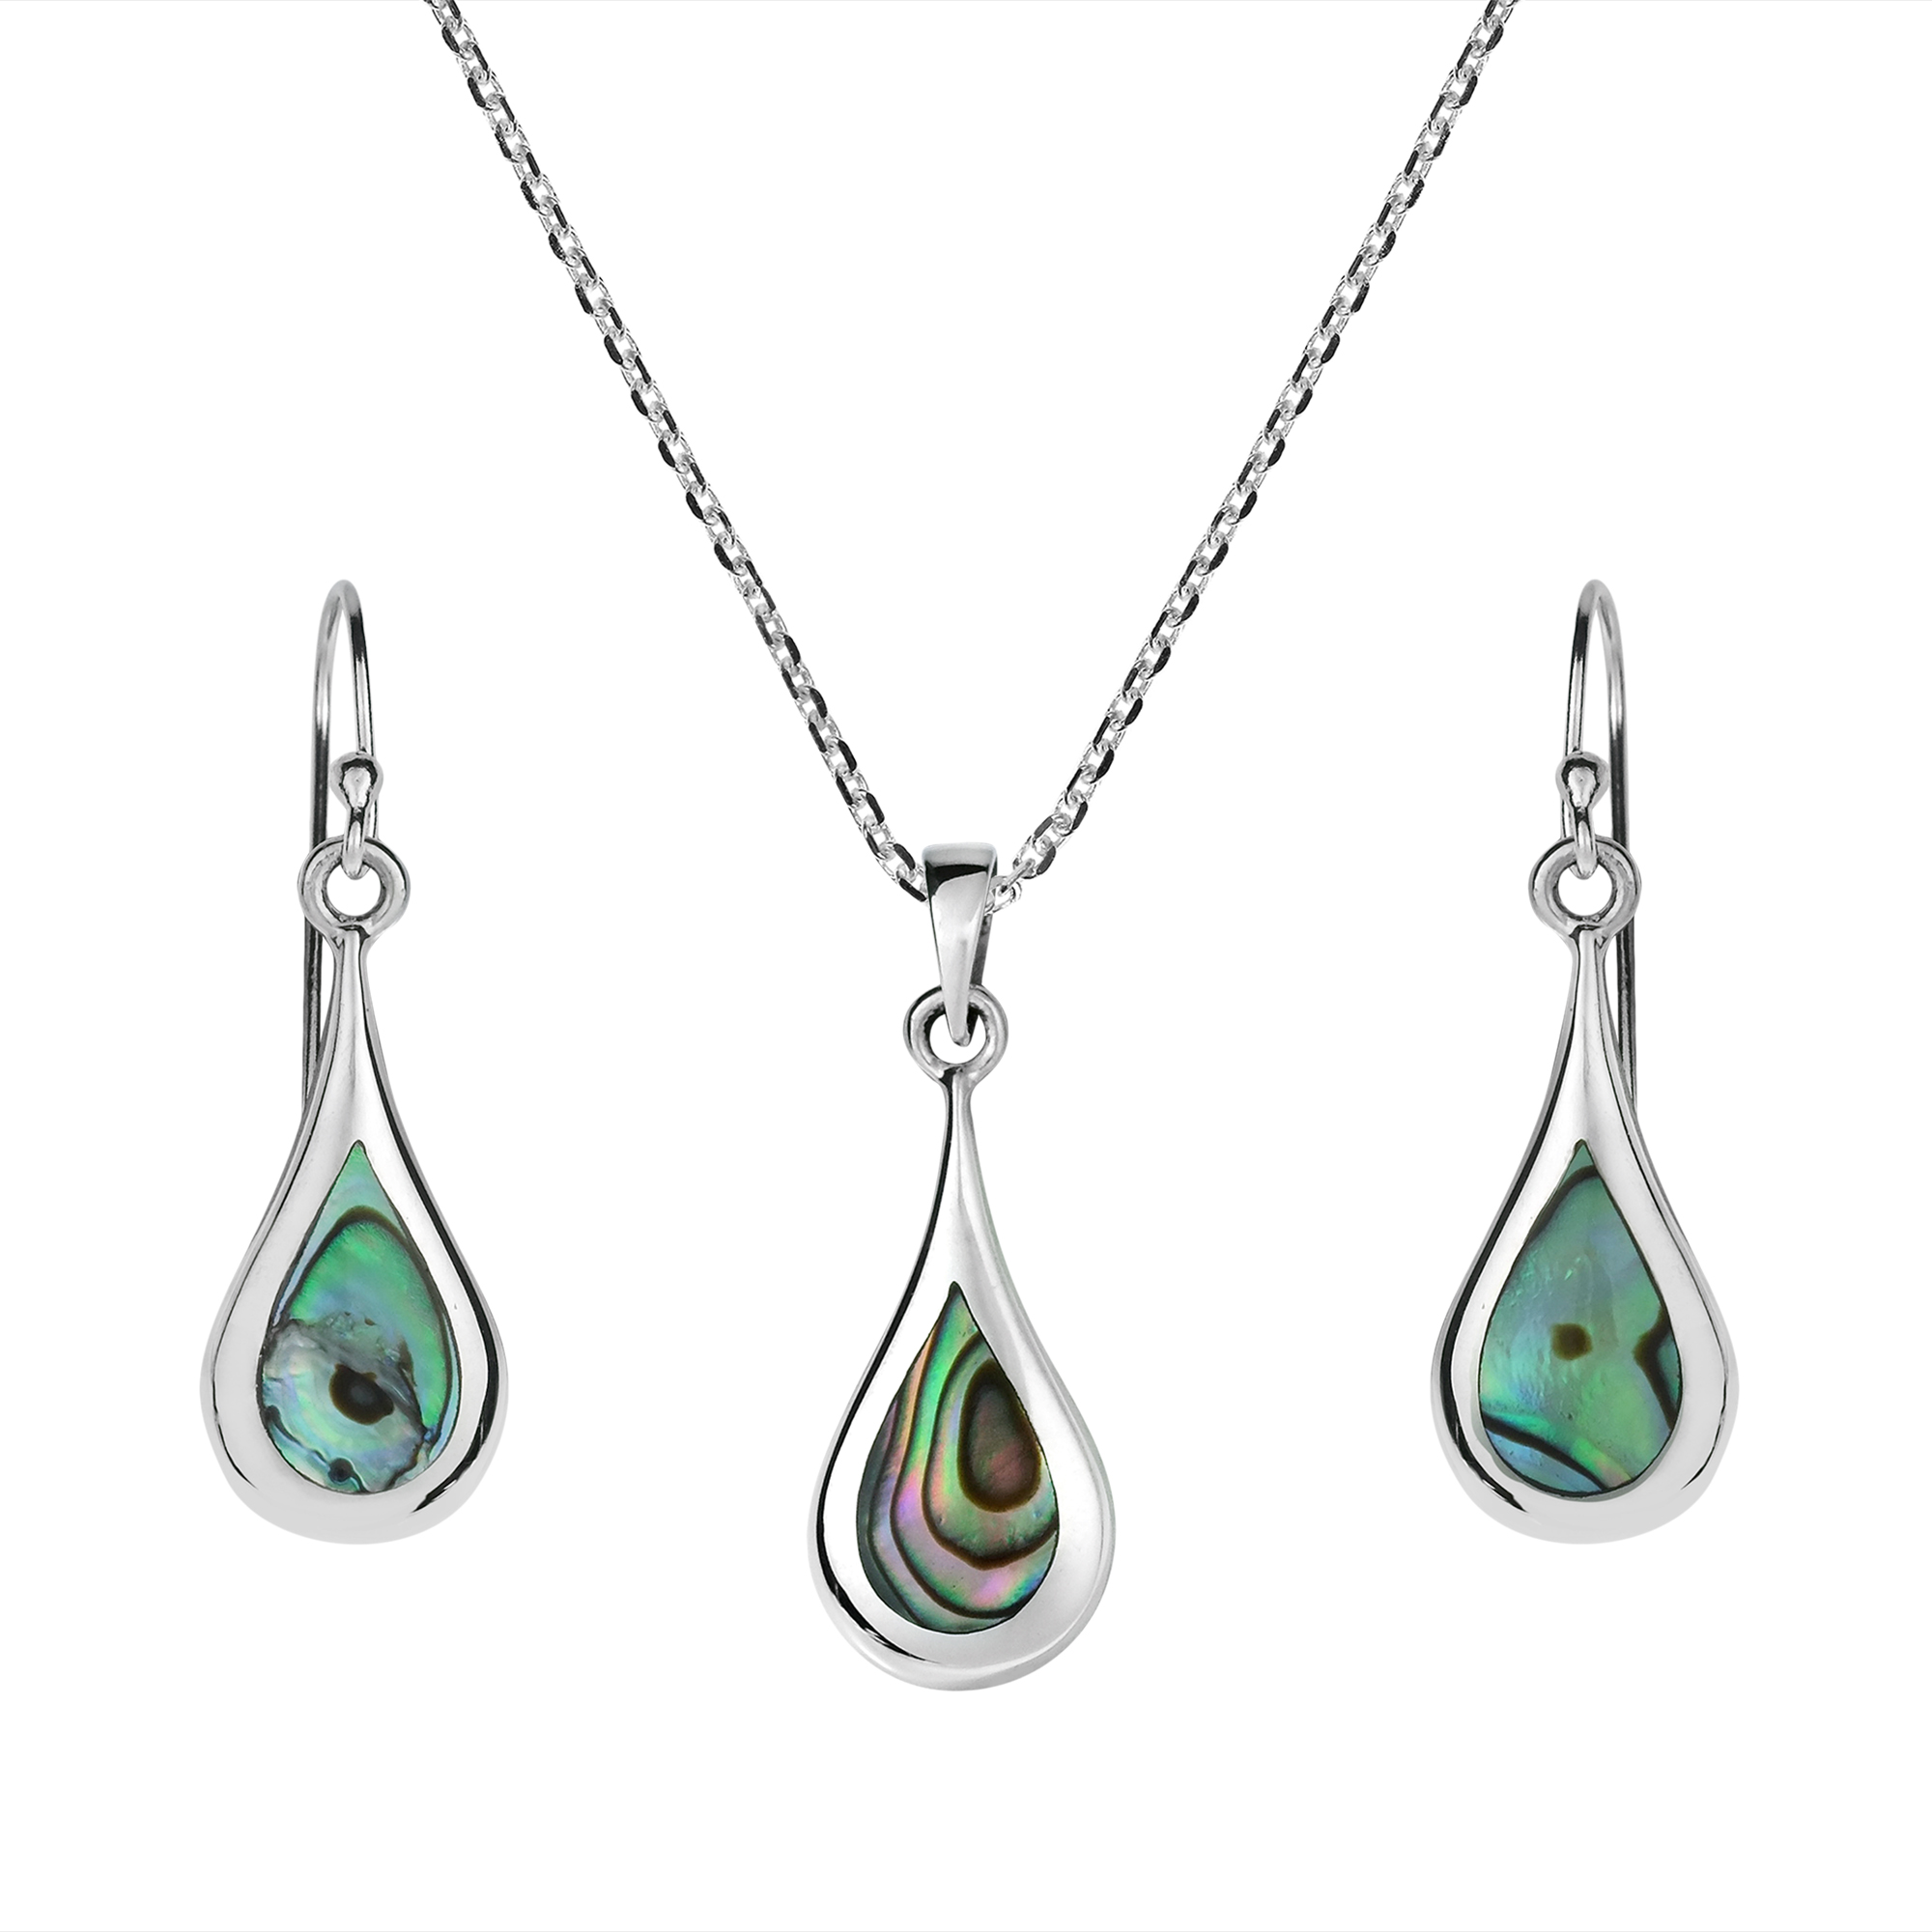 abalone shell teardrop sterling silver jewelry set